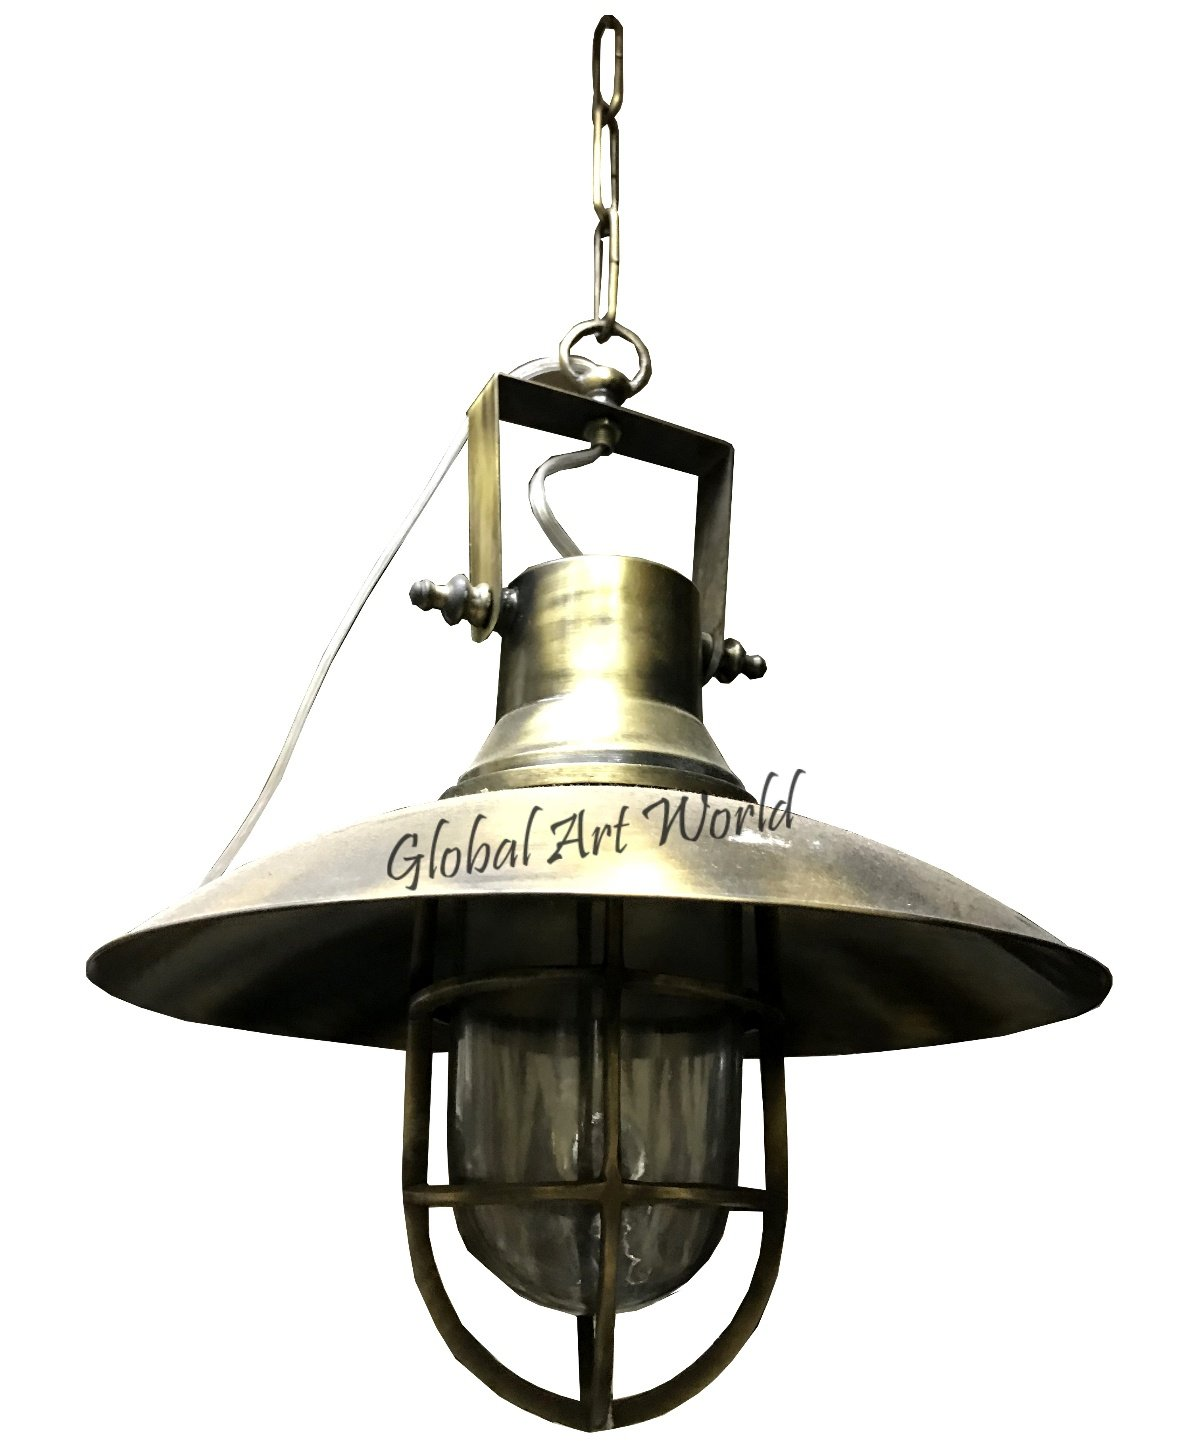 Global Art World Old Antique Warehouse Vintage Antiquated Marine Home Décor Pendant lamp - industrial lighting - vintage hanging lamps - ceiling lamps - Edison bulbs - factory light HB 0185